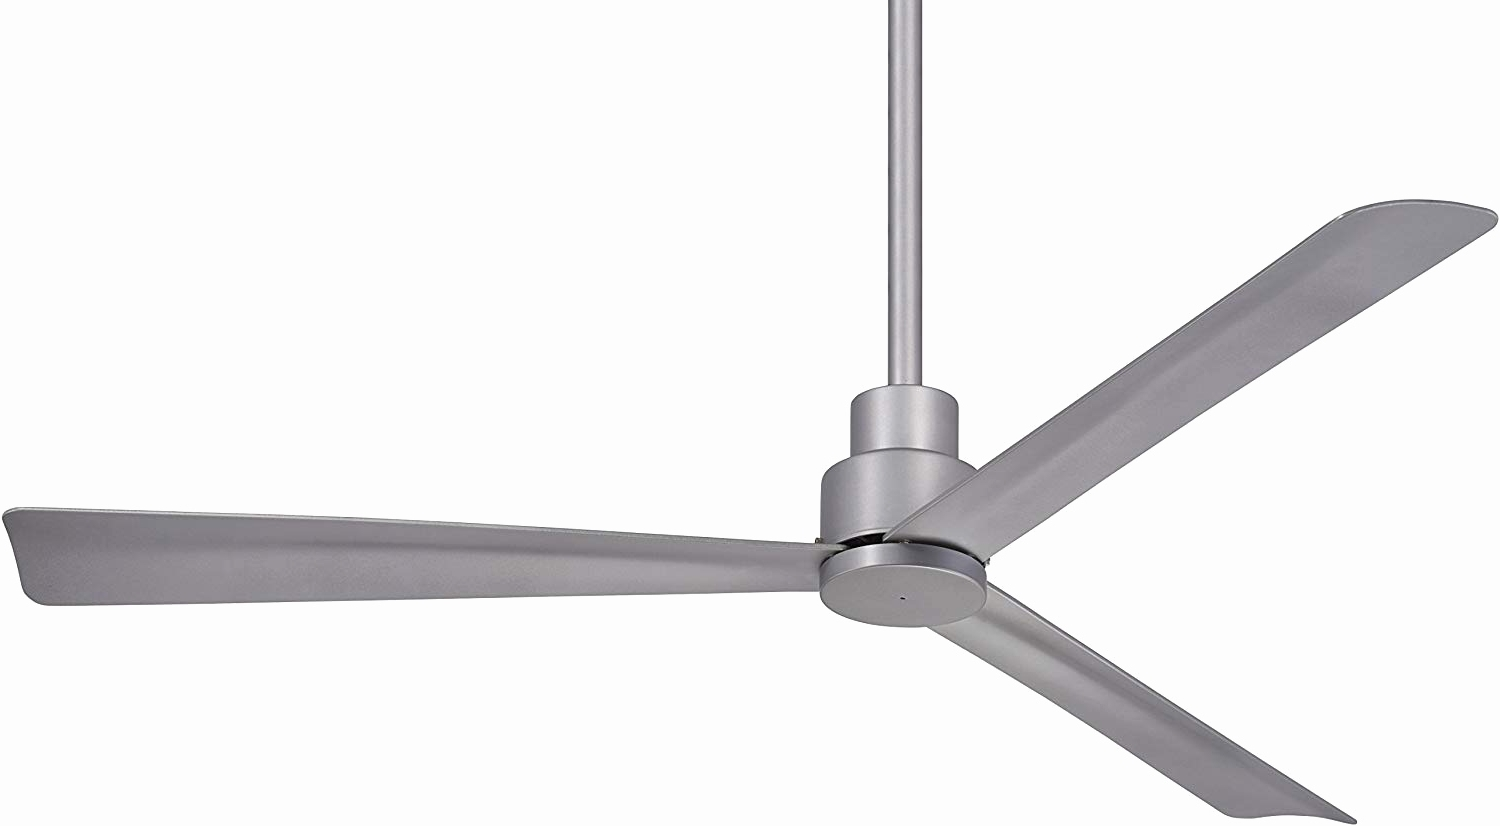 Aftu For Outdoor Ceiling Fans At Amazon (Gallery 14 of 21)